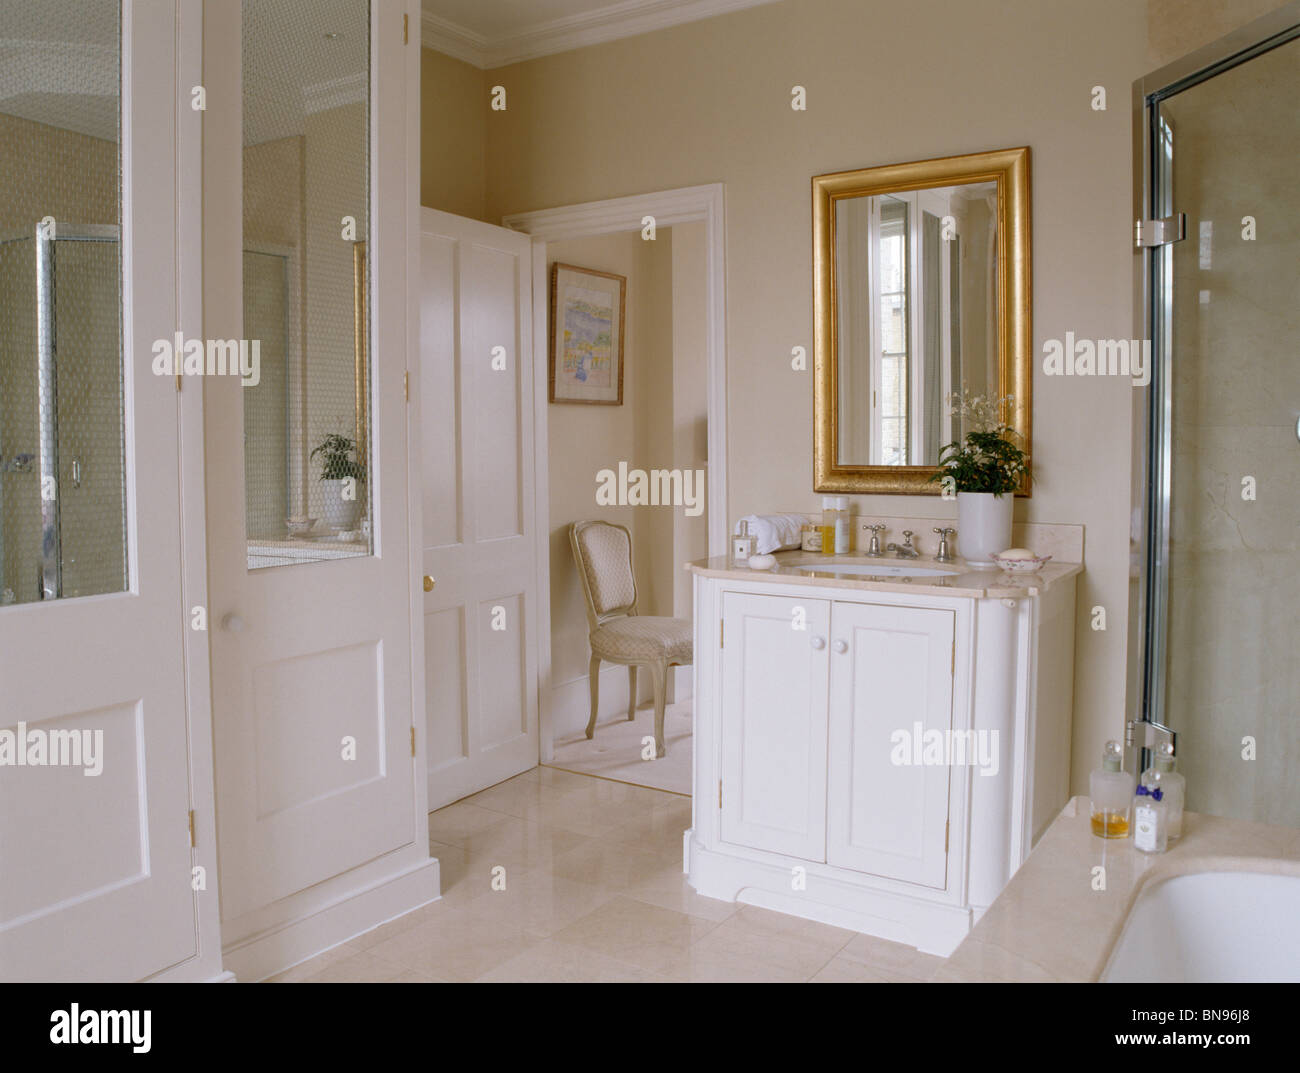 Gilt mirror above vanity unit in traditional cream townhouse bathroom - Stock Image